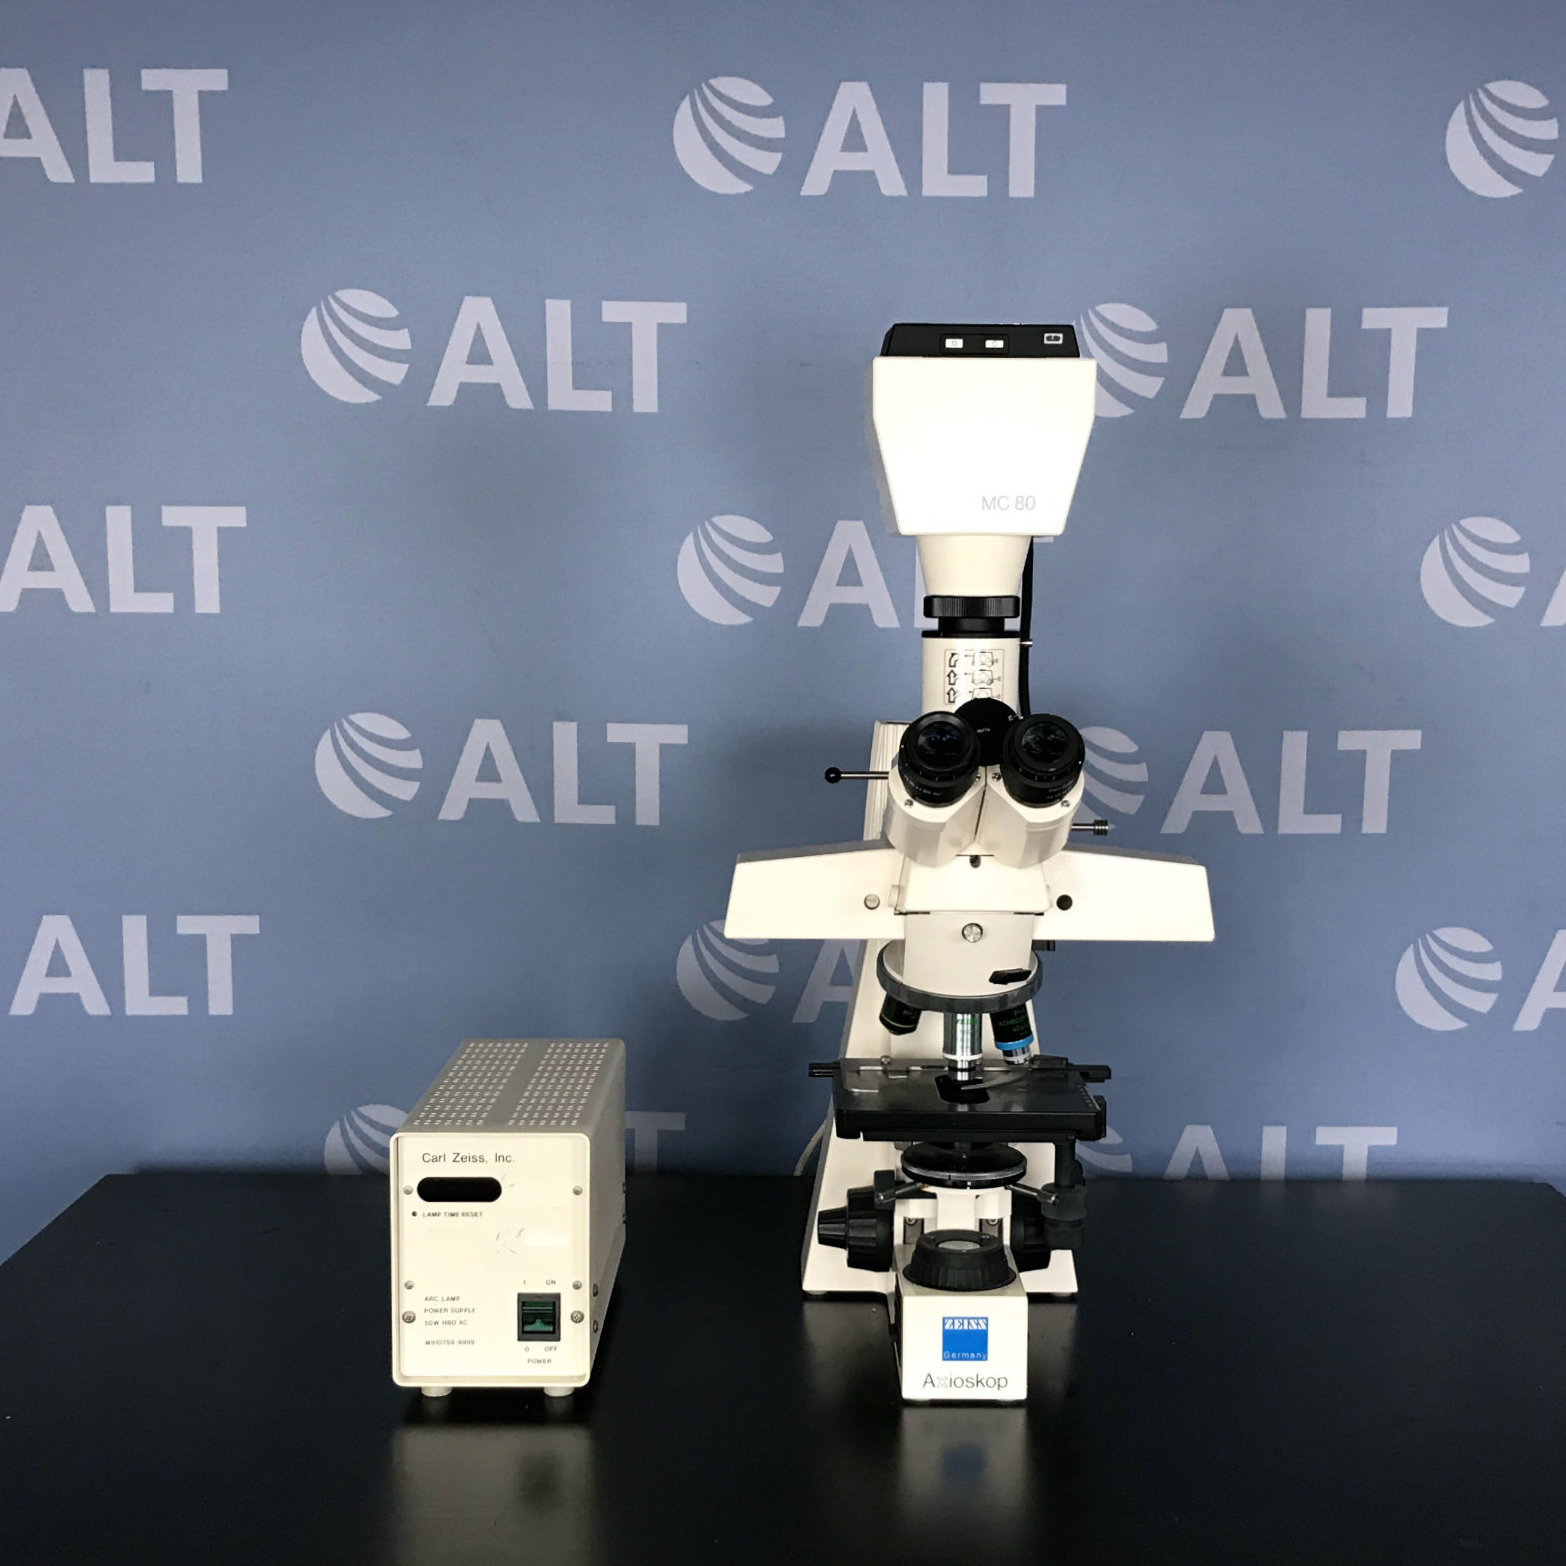 Carl Zeiss  AxioSkop Upright Fluorescence Microscope Image